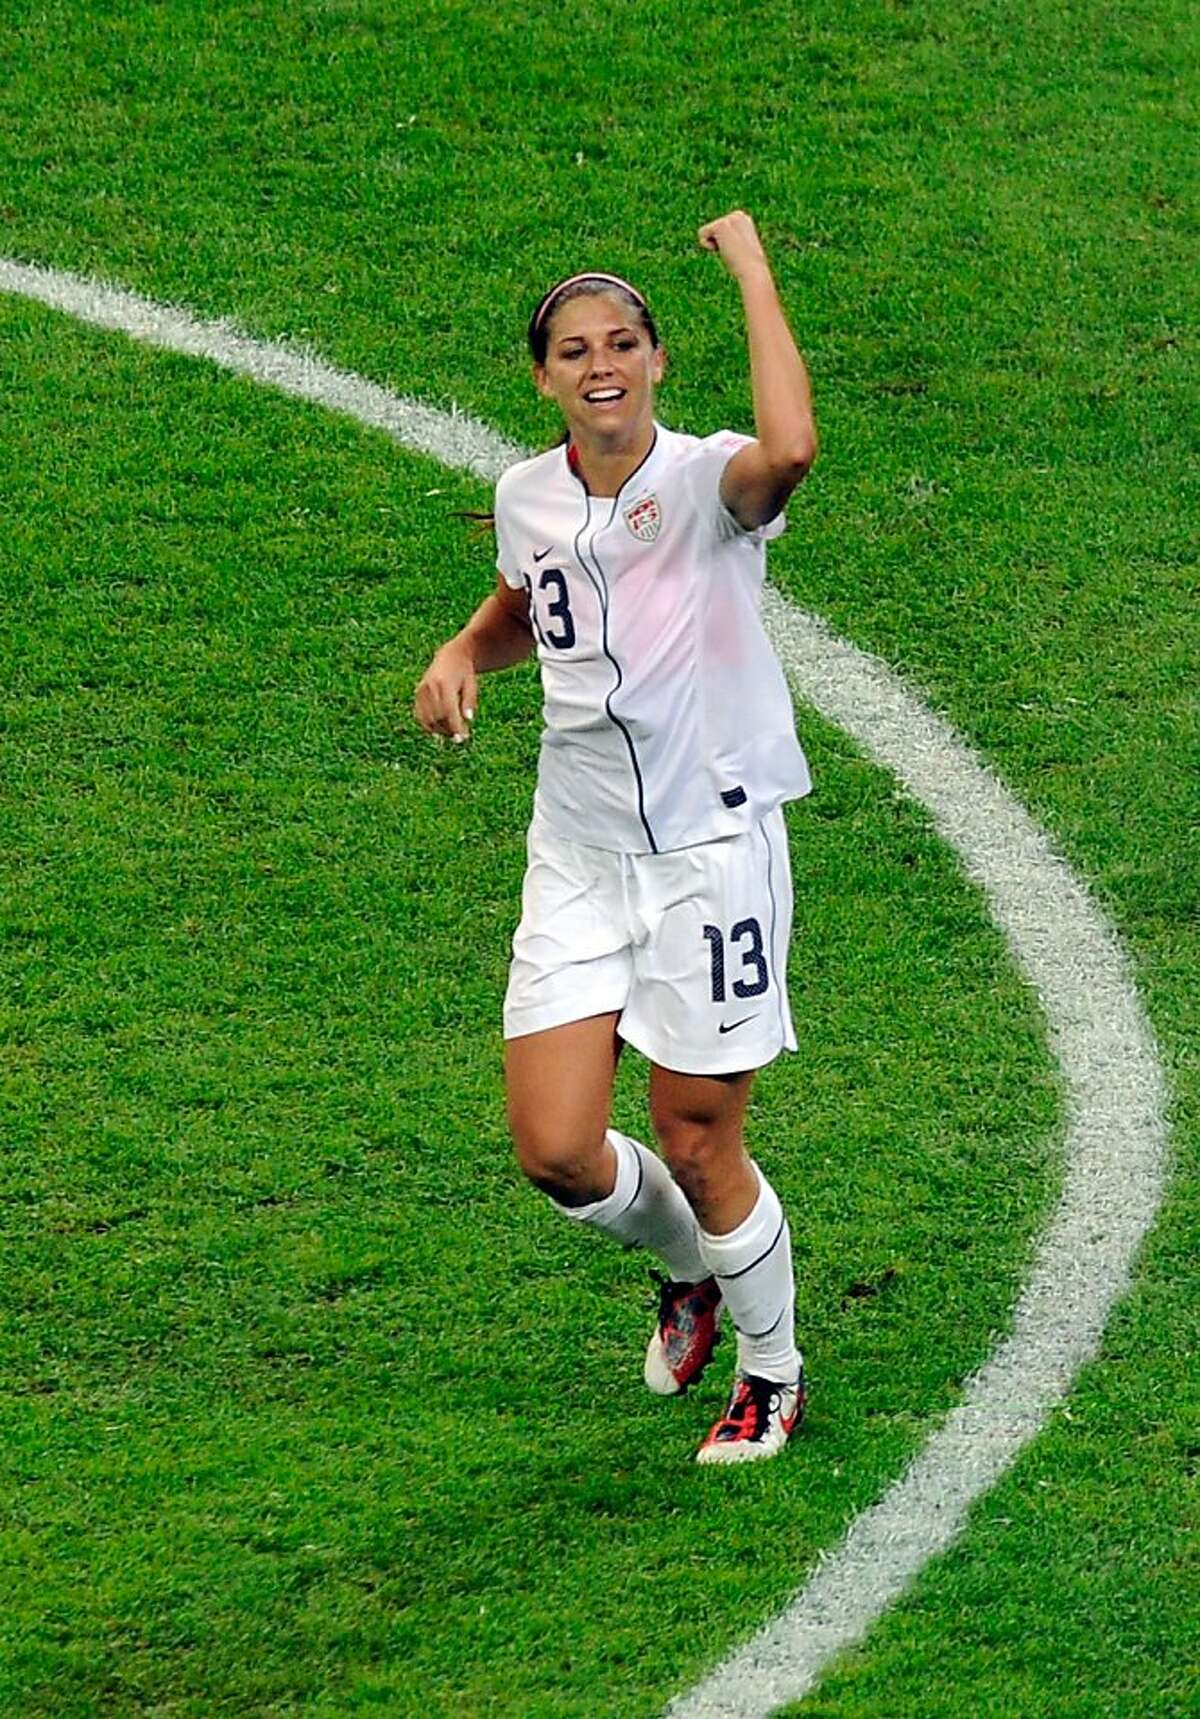 FRANKFURT AM MAIN, GERMANY - JULY 17: Alex Morgan of United States celebrates after scoring her teams first goal during the FIFA Womens's World Cup Final between the United States of America and Japan at FIFA Word Cup stadium on July 17, 2011 in Frankfurt am Main, Germany.